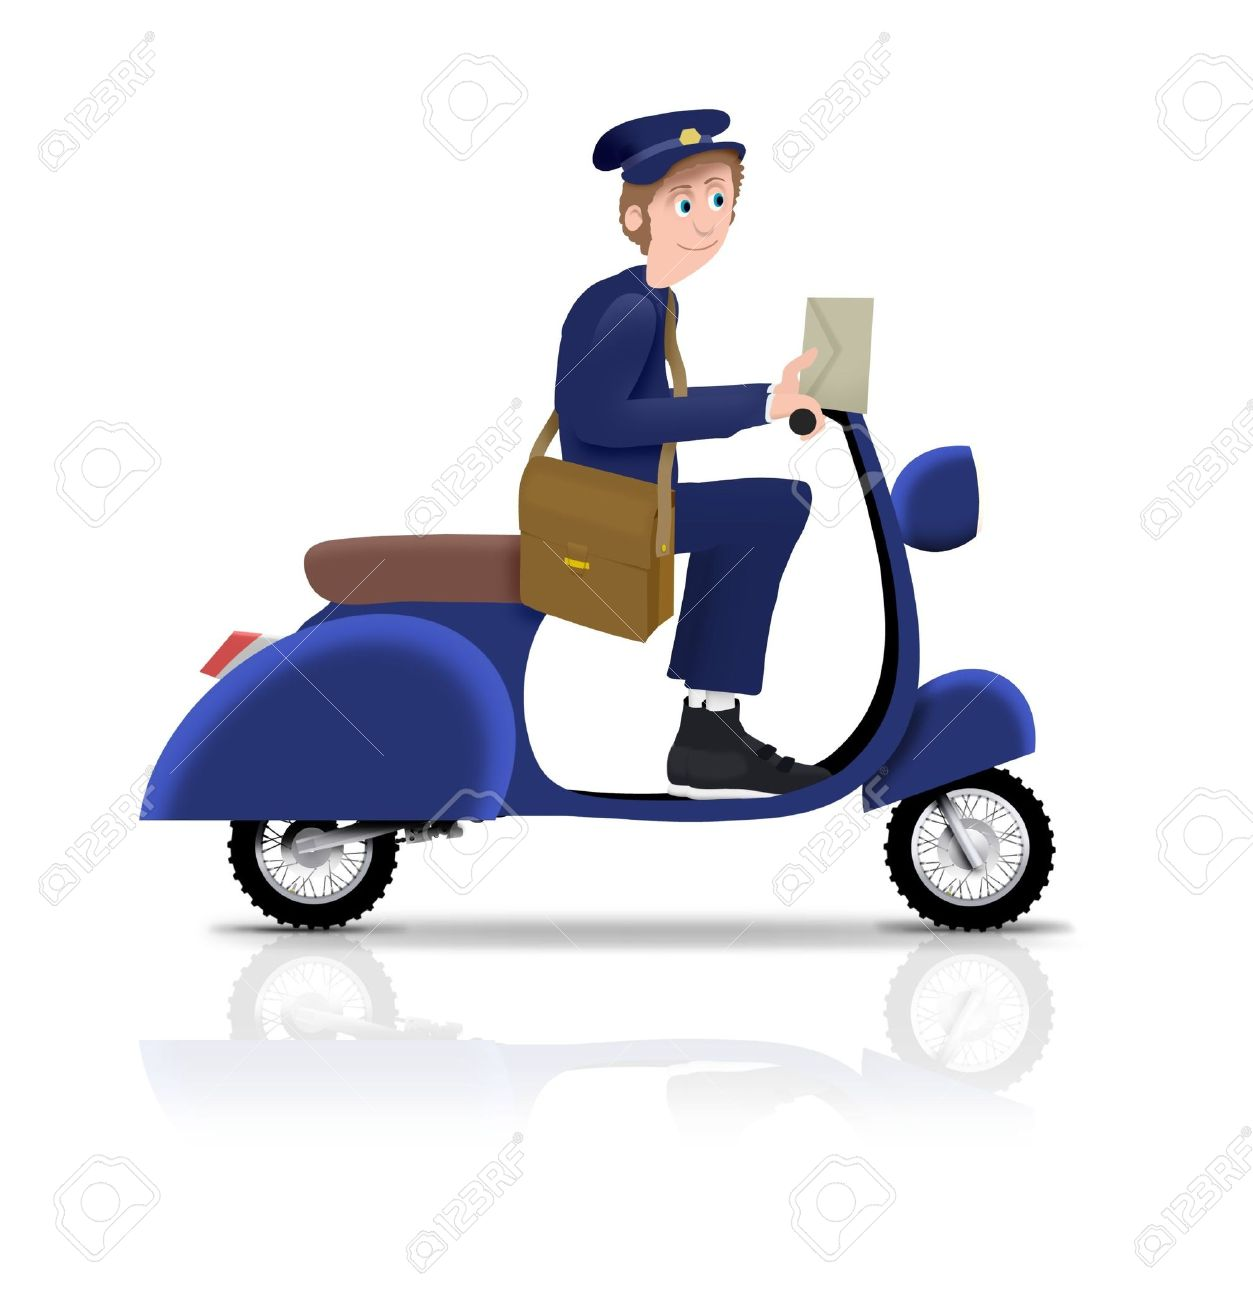 Illustrated Postman Riding A Scooter Stock Photo, Picture And.